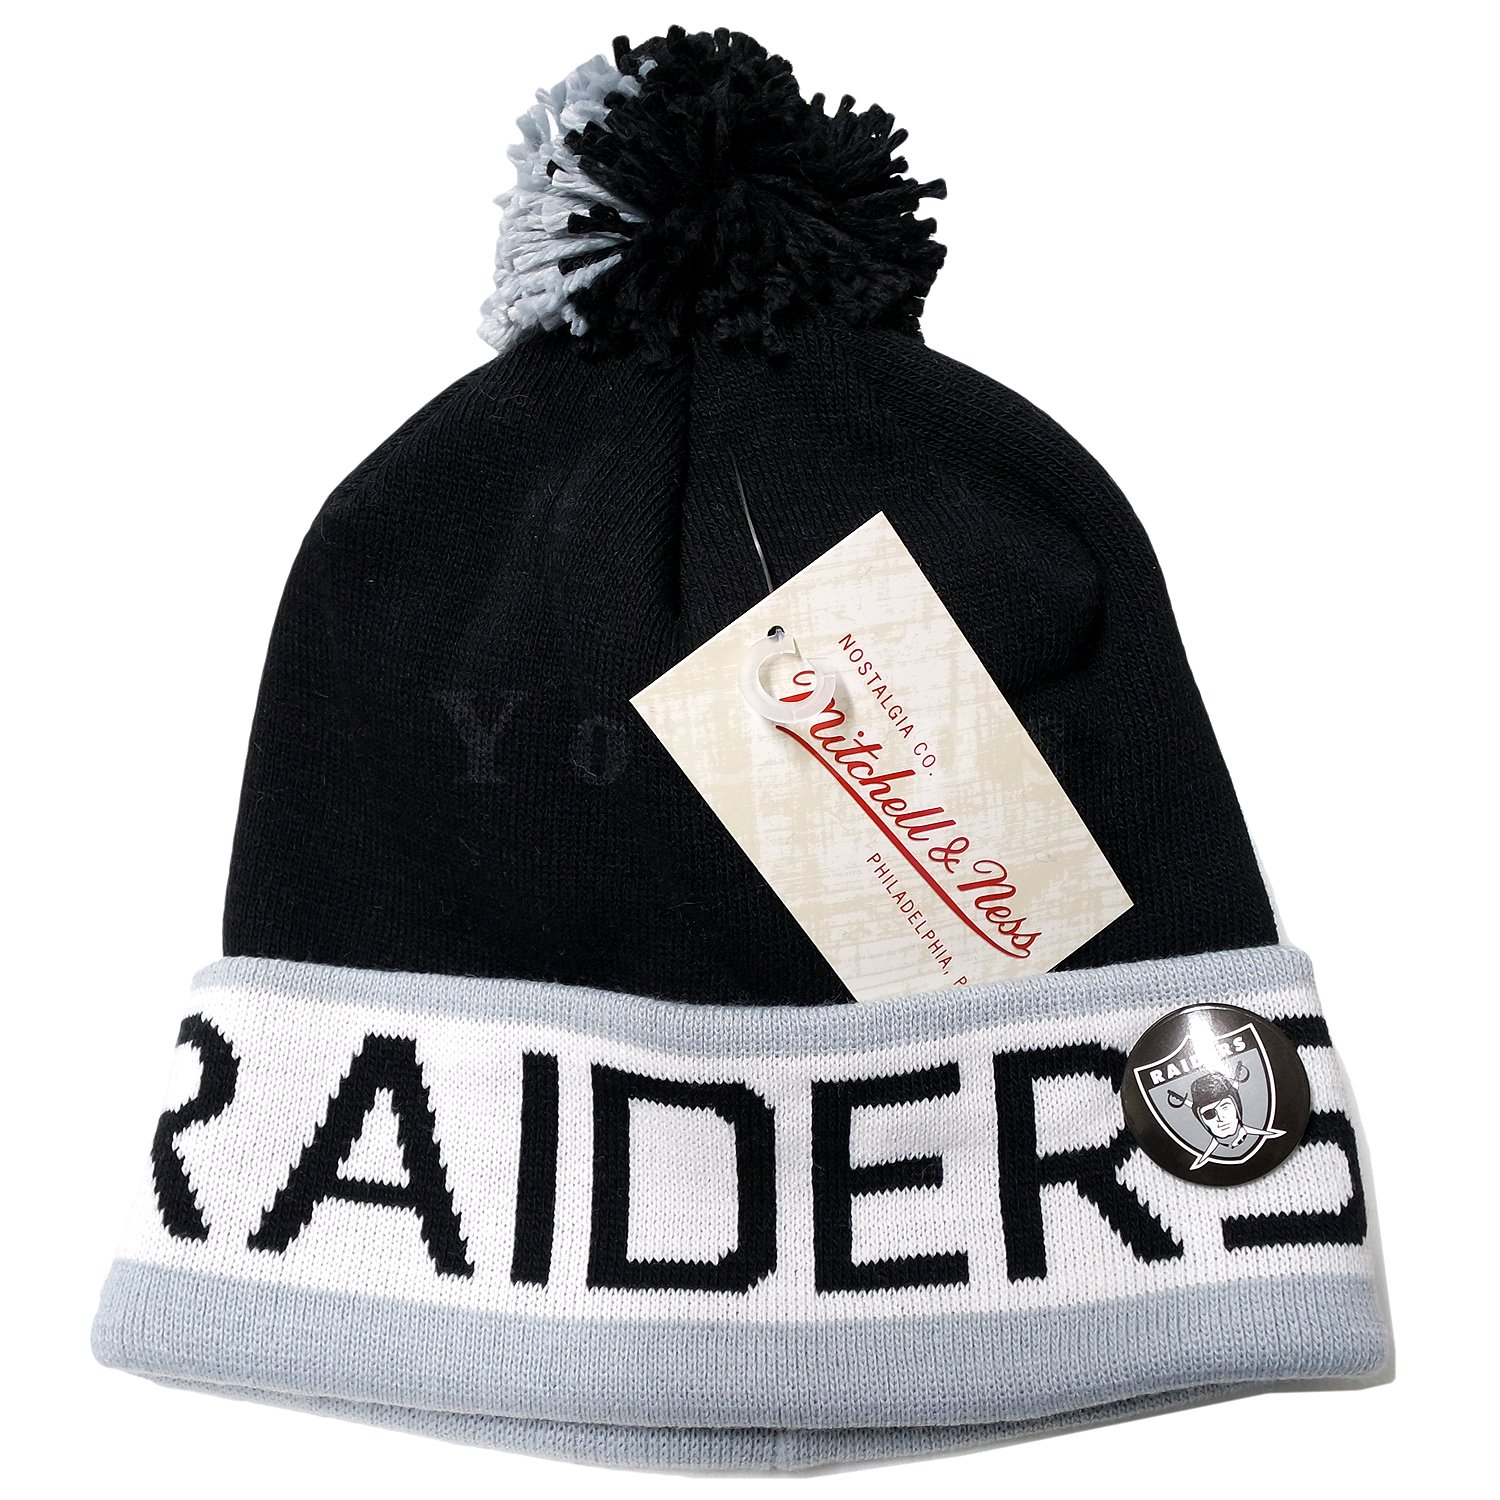 e194bcd07bc55 Amazon.com   Mitchell and Ness NFL Oakland Raiders 2 Tone Cuffed Knit Pom  Beanie Cap with Pin   Sports   Outdoors